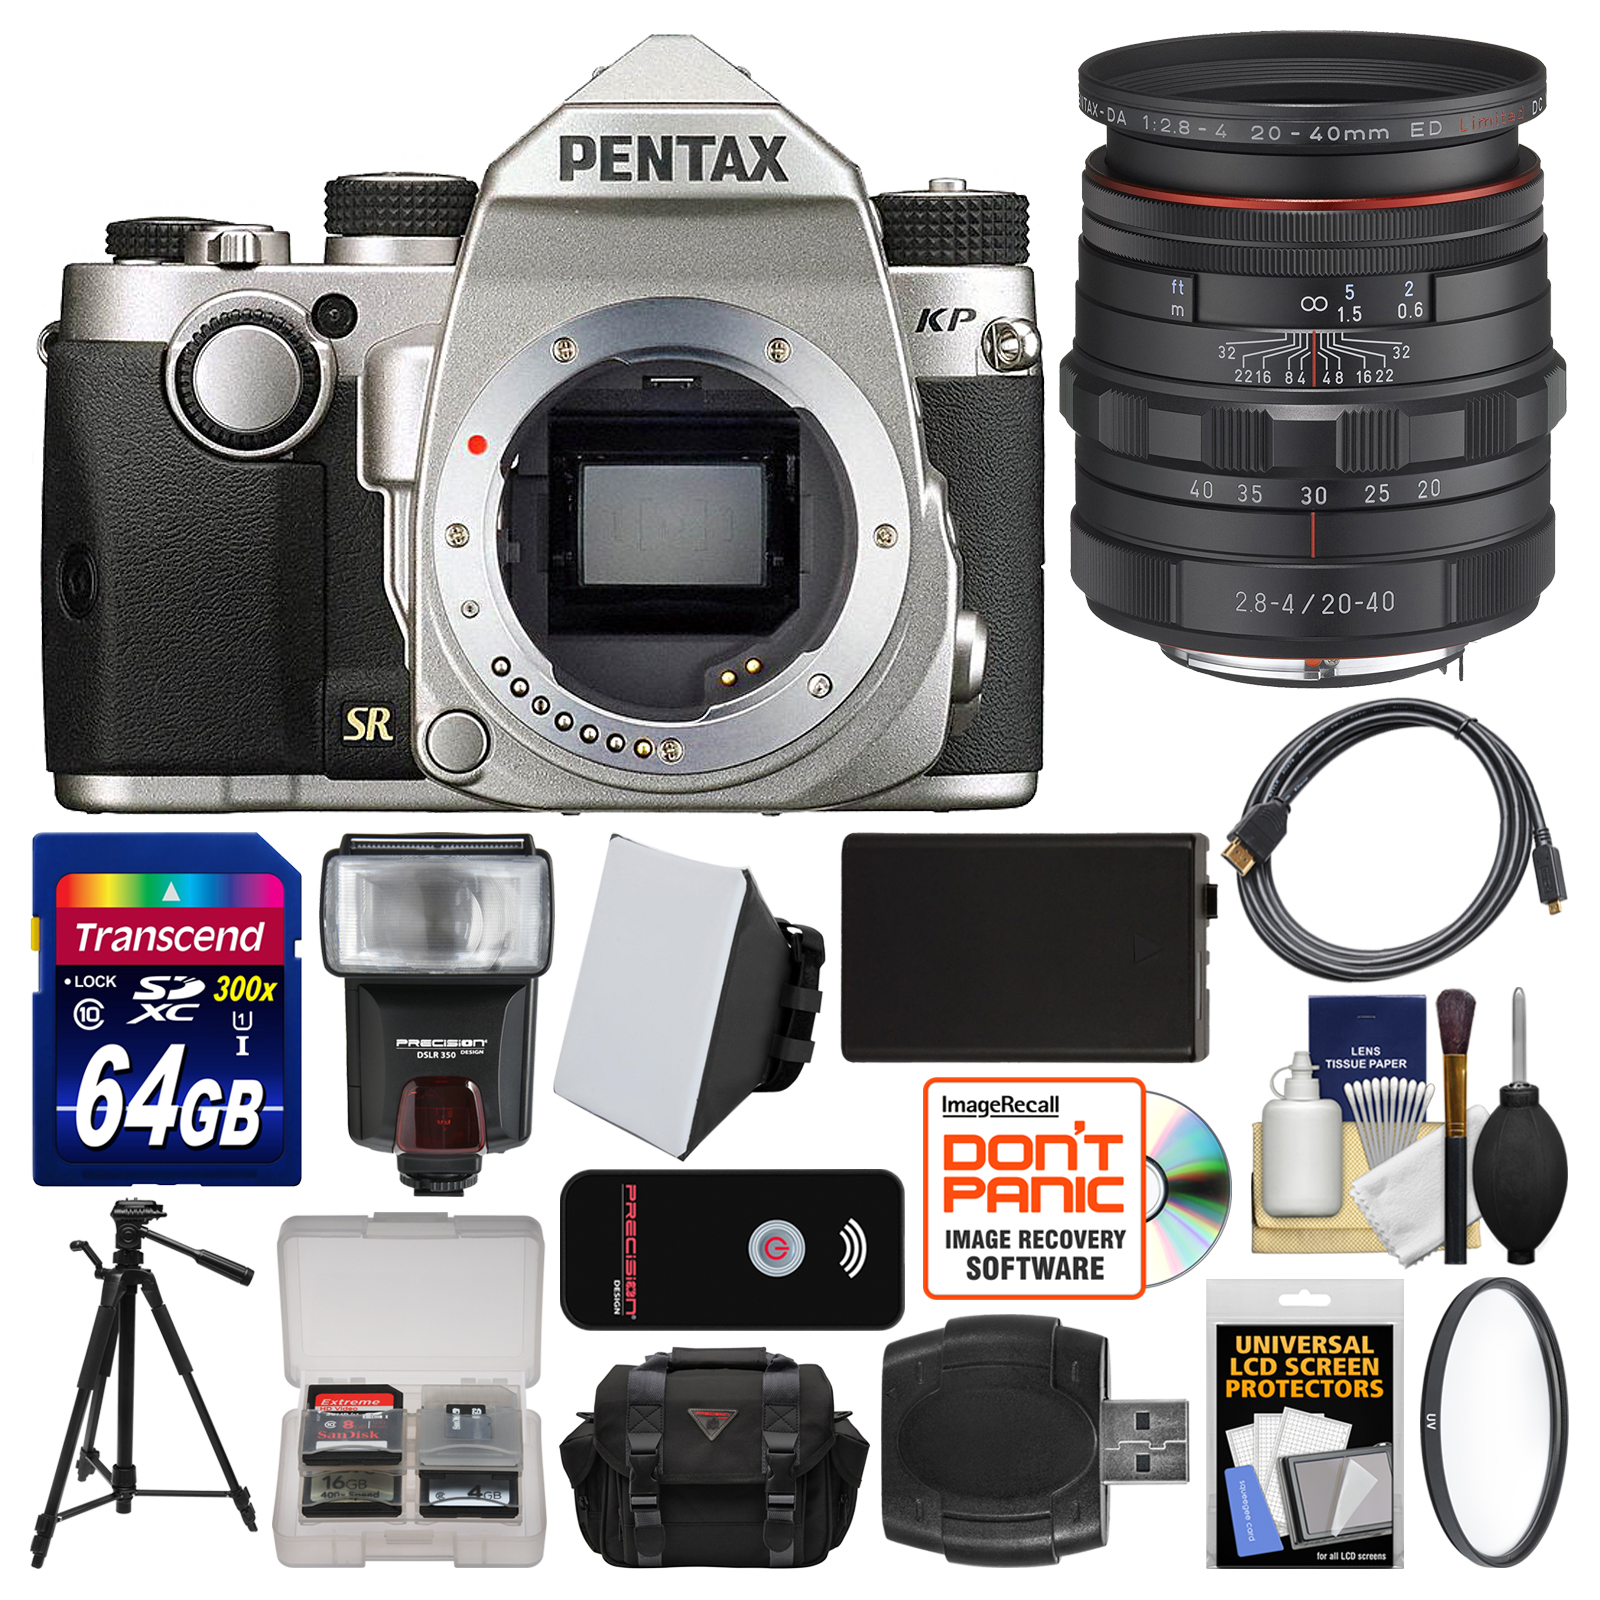 Pentax KP Wi-Fi Digital SLR Camera Body (Silver) with 20-40mm Lens + 64GB Card + Case + Flash + Battery +... by Pentax